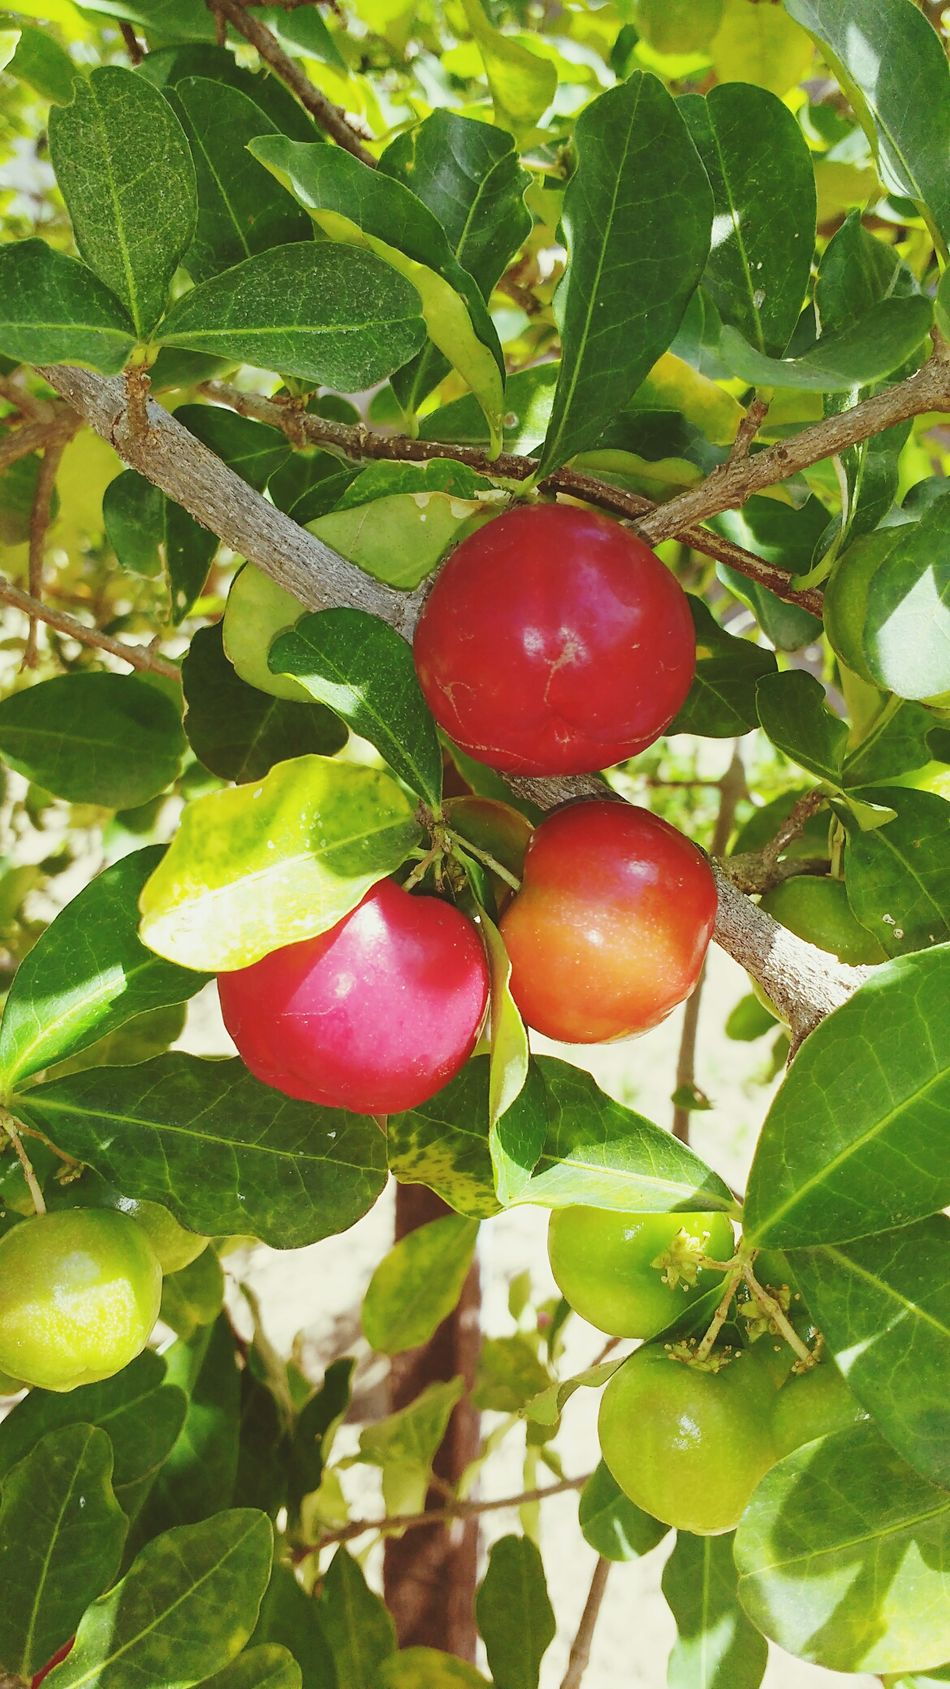 Fruit Food And Drink Food Freshness Green Color Healthy Eating No People Outdoors Agriculture Red Growth Close-up Tree Nature Leaf Plant Day Beauty In Nature